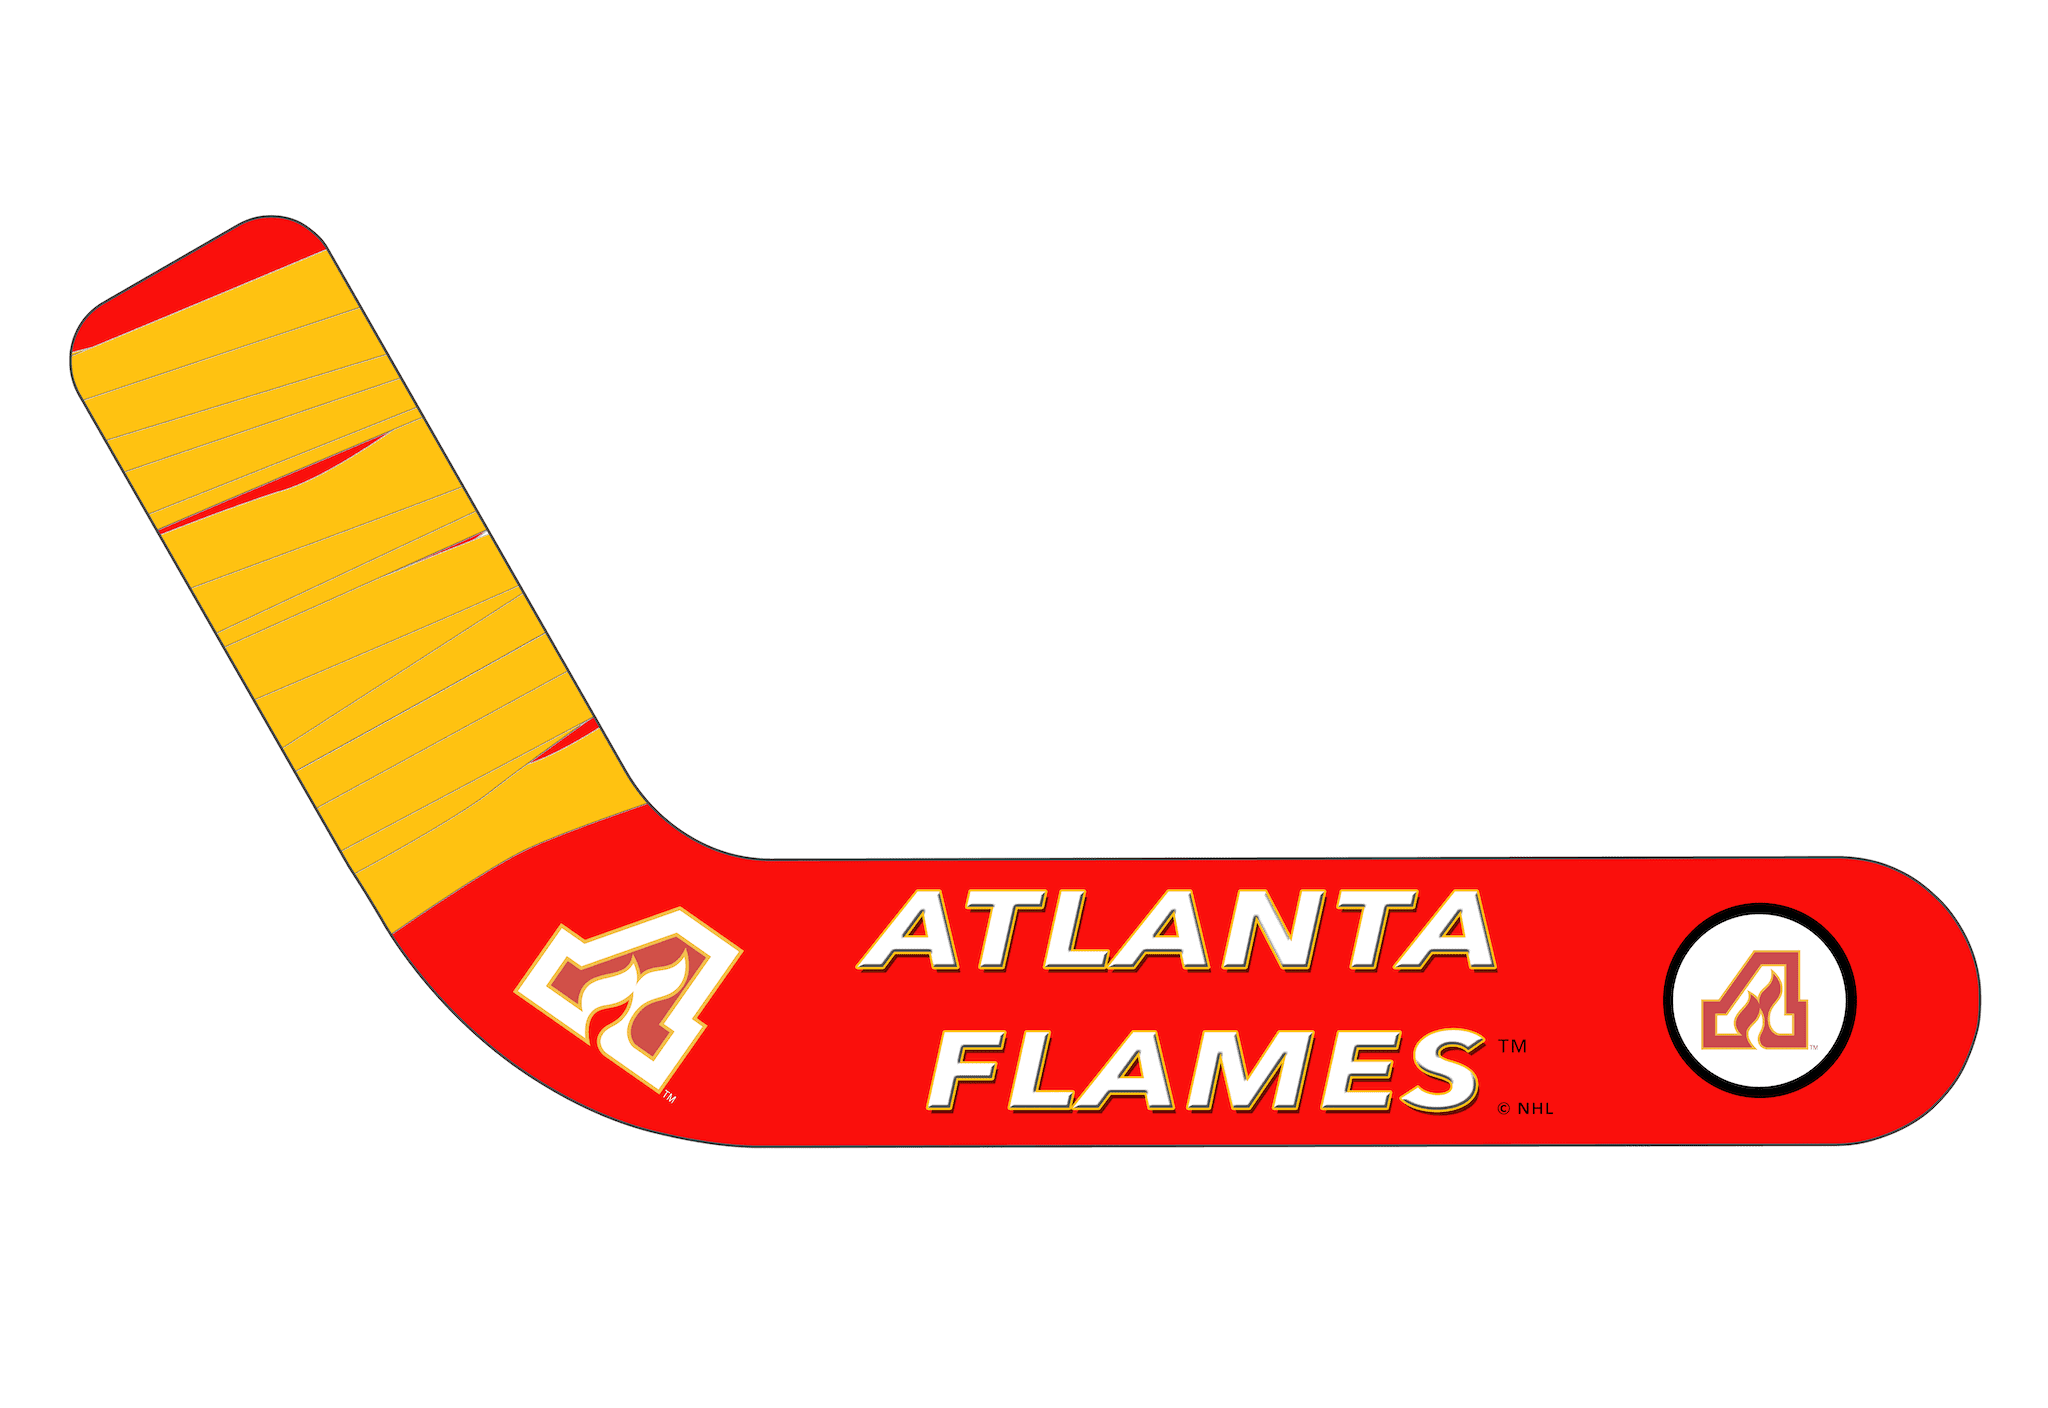 Vintage Atlanta Flames 1972-73 - Ultimate Hockey Ceiling Fans